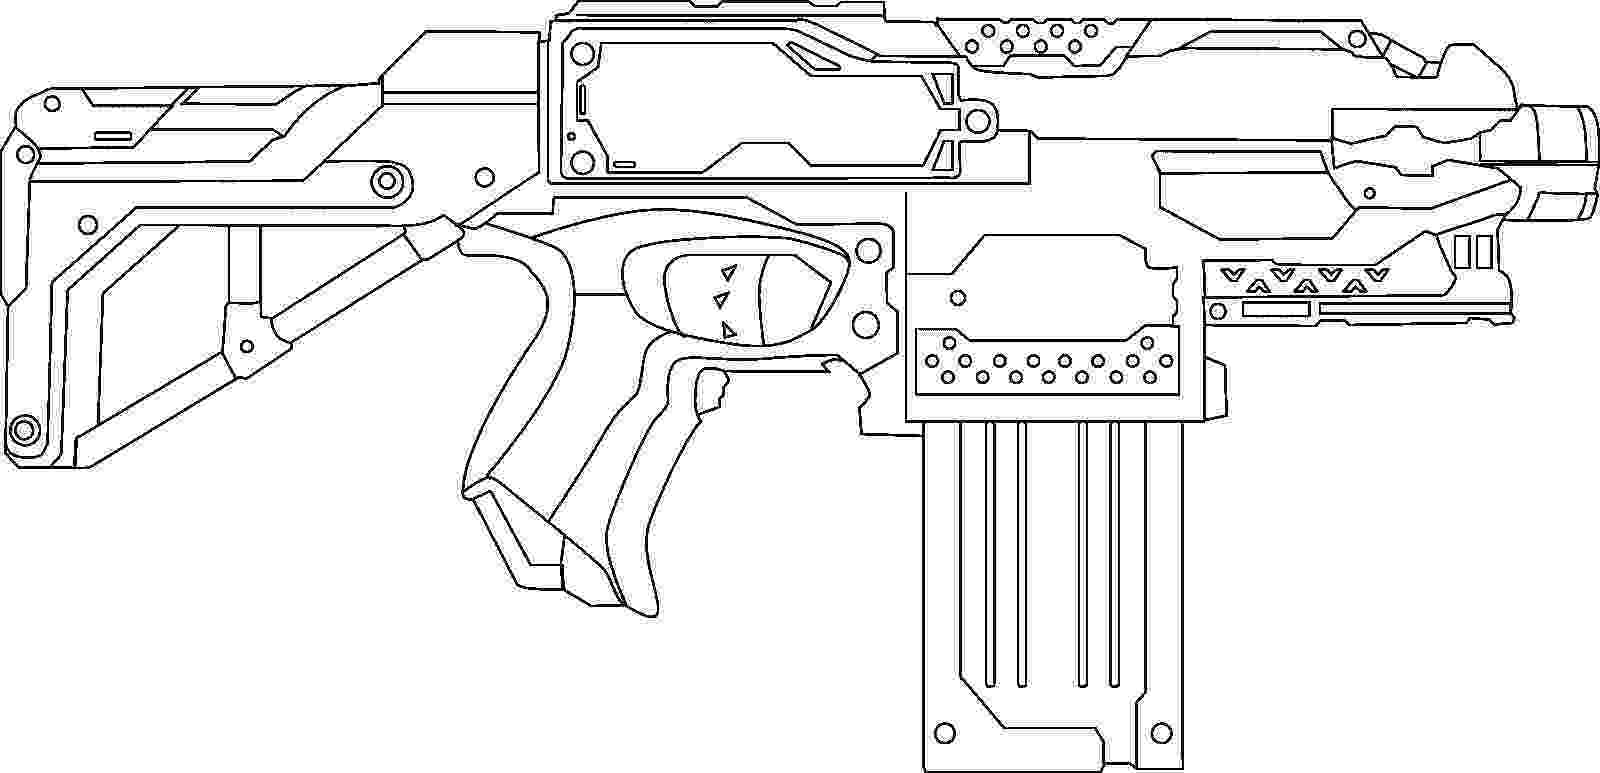 nerf gun colouring pages pin on ben colouring nerf gun pages